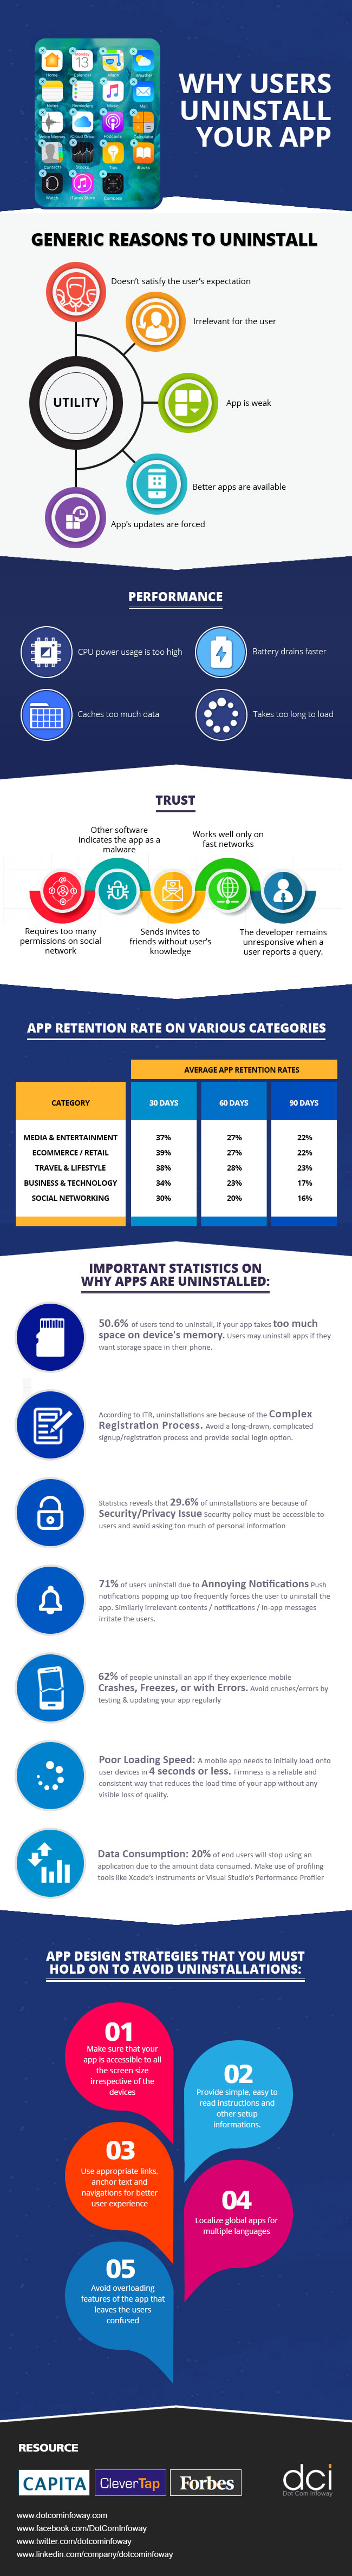 Why-Users-Uninstall-Your-App-Infographic